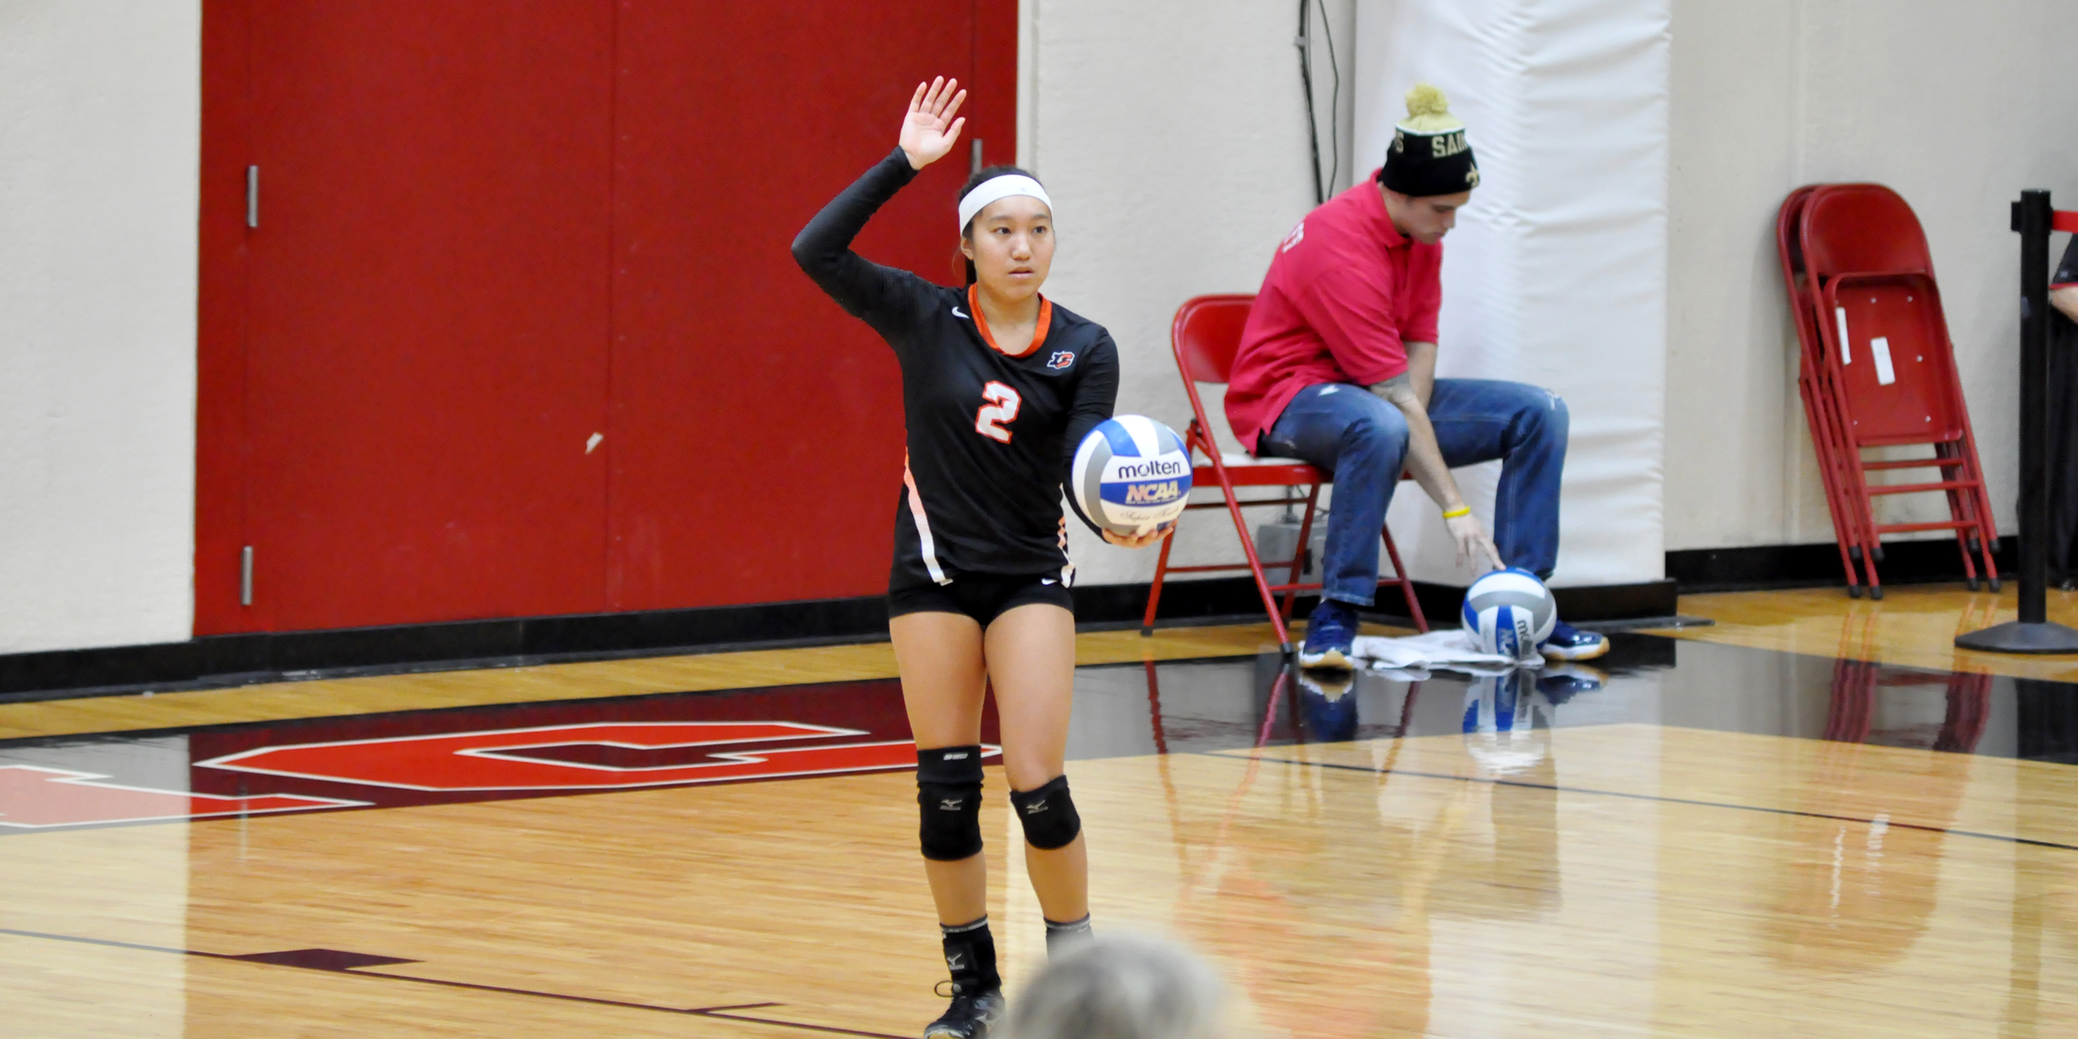 Navarro and Somers combine for 40 digs in loss to Whitman